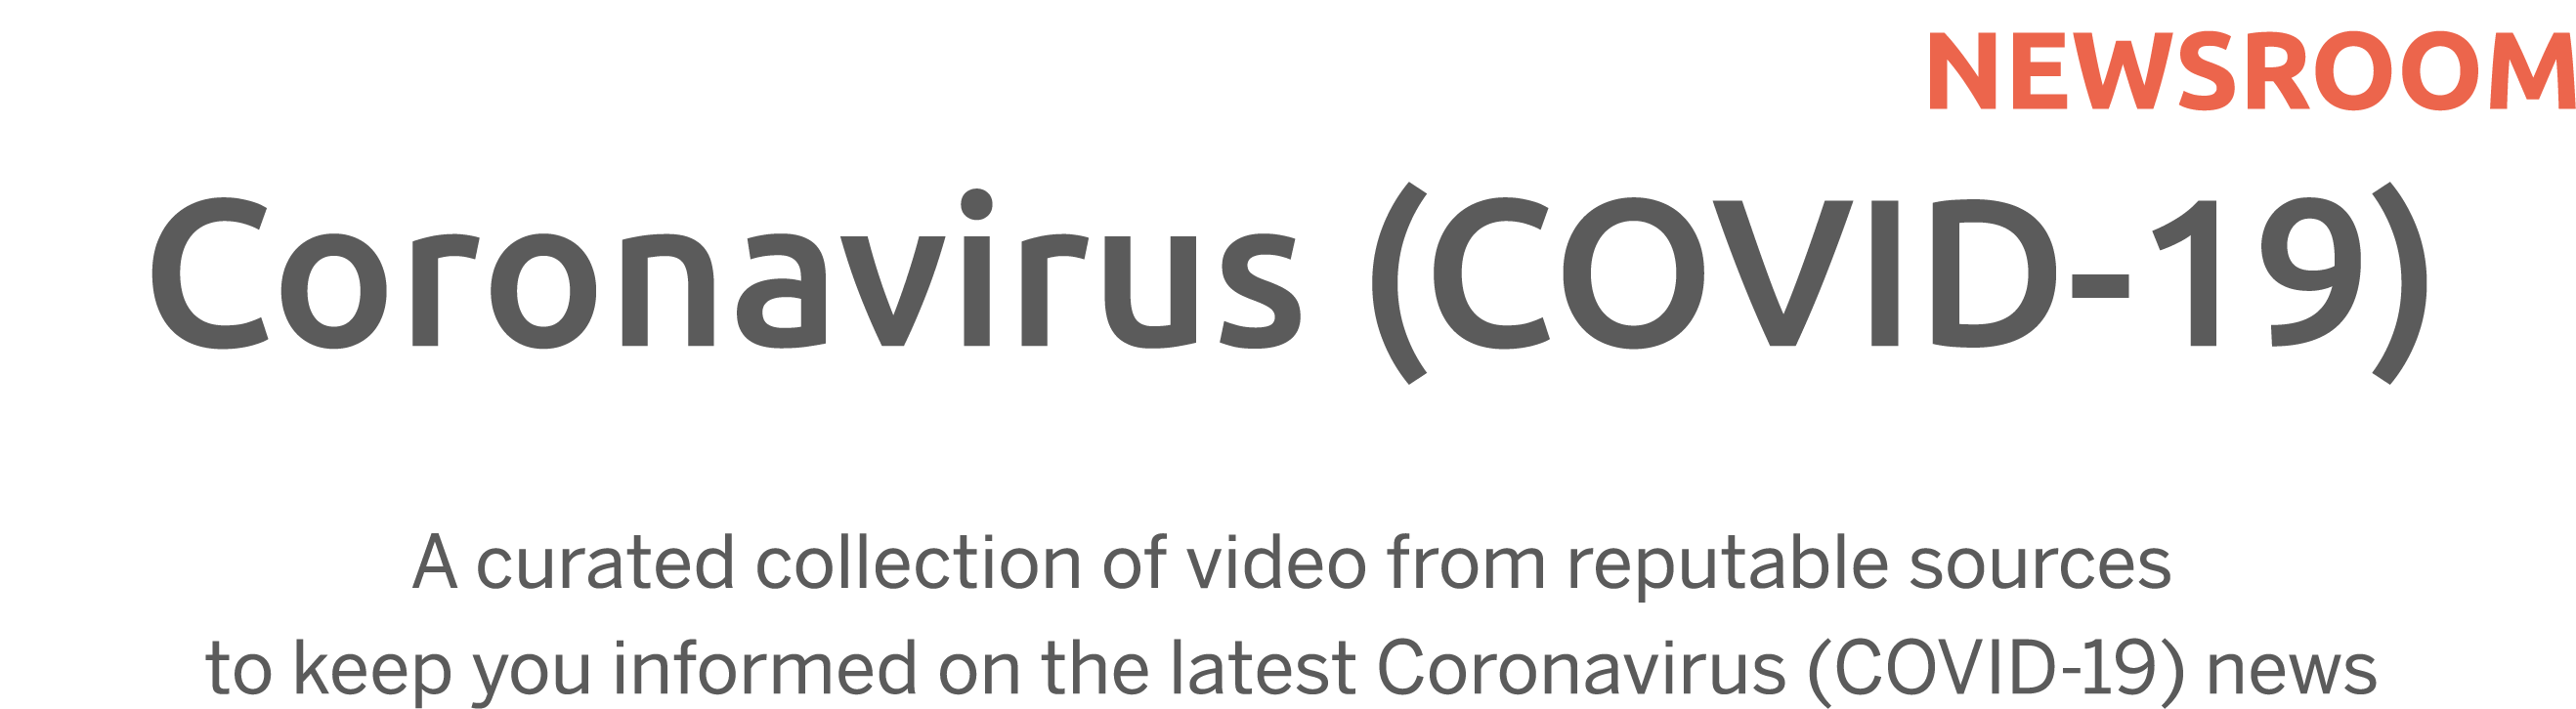 A curated collection of video from reputable sources              to keep you informed on the latest Coronavirus (COVID-19) news